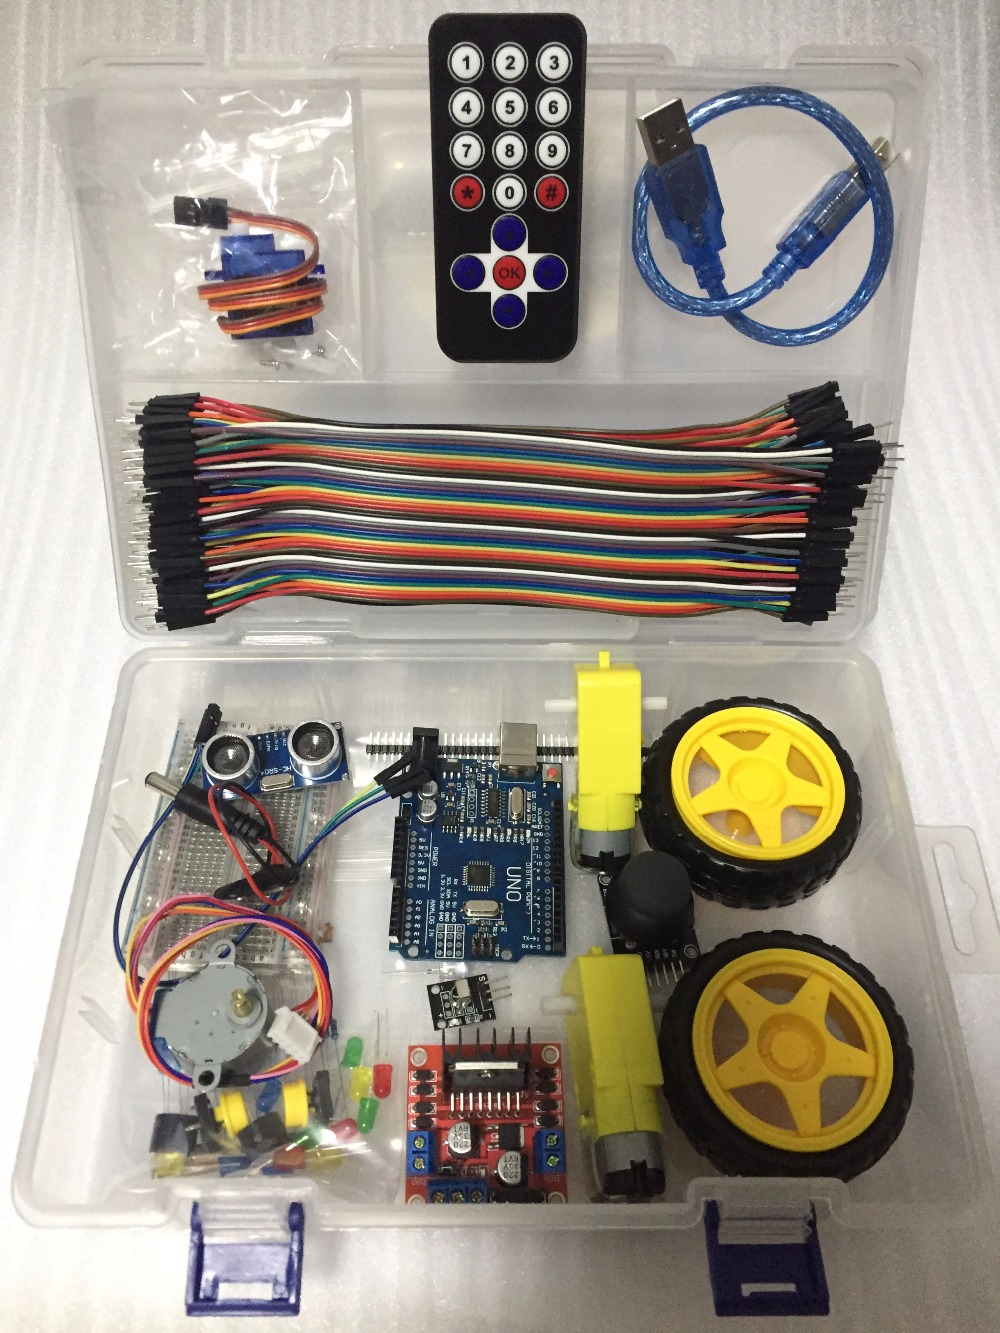 caizhixing-font-b-arduino-b-font-kit-for-education-learning-kit-learning-suite-with-retail-box-for-font-b-arduino-b-font-uno-r3